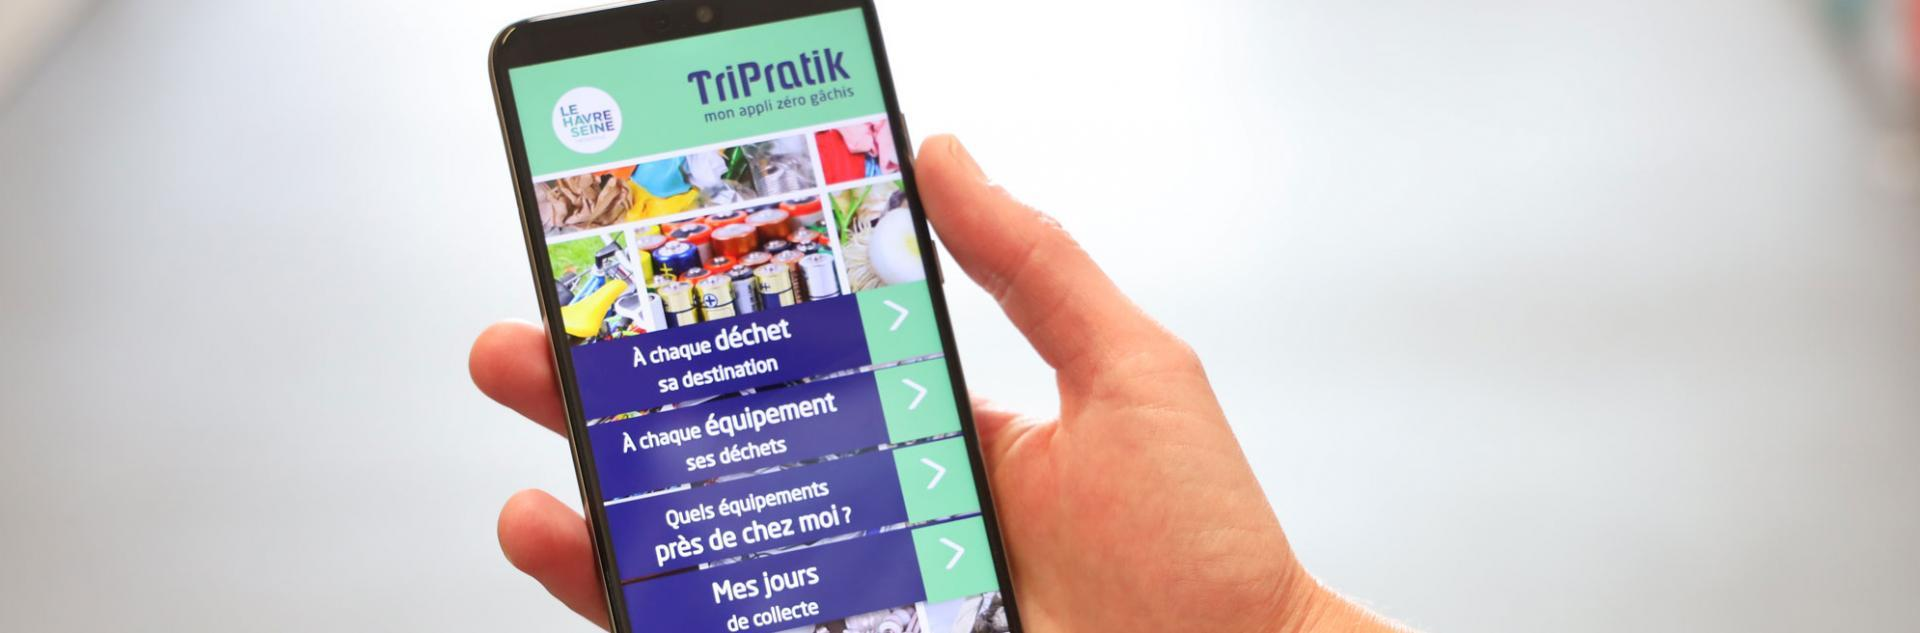 L'application TriPratik